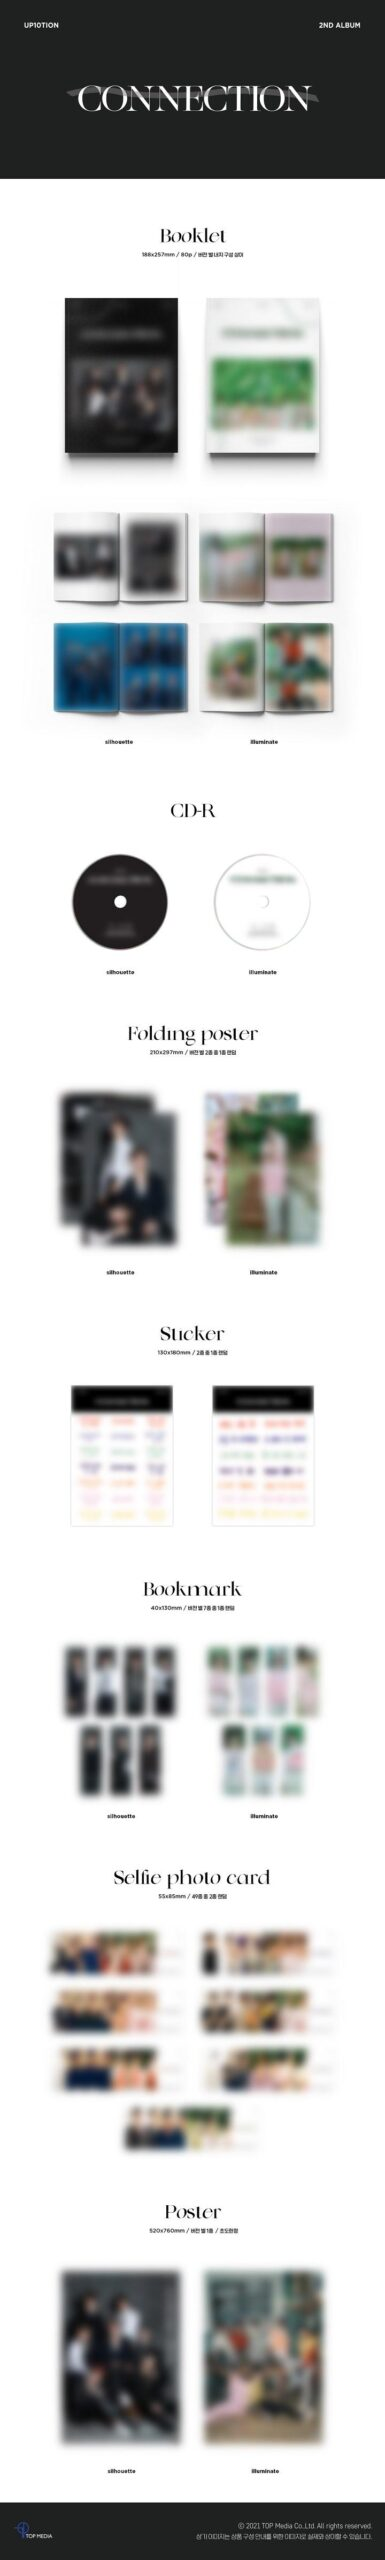 Vol.2 UP10TION CONNECTION Illuminate Ver. o Silhouette Ver. Poster 1